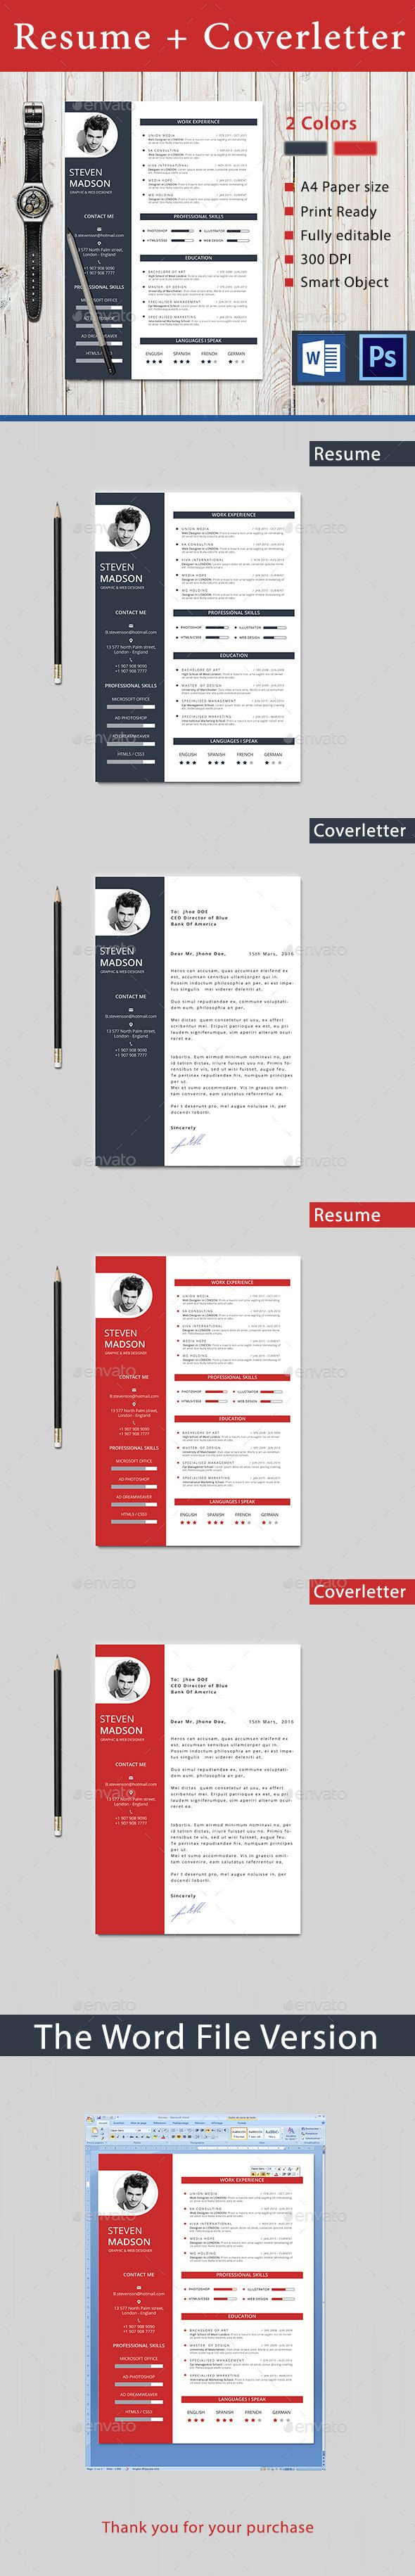 Resume — Photoshop PSD #simple #red resume • Available here → https://graphicriver.net/item/resume/14326598?ref=pxcr